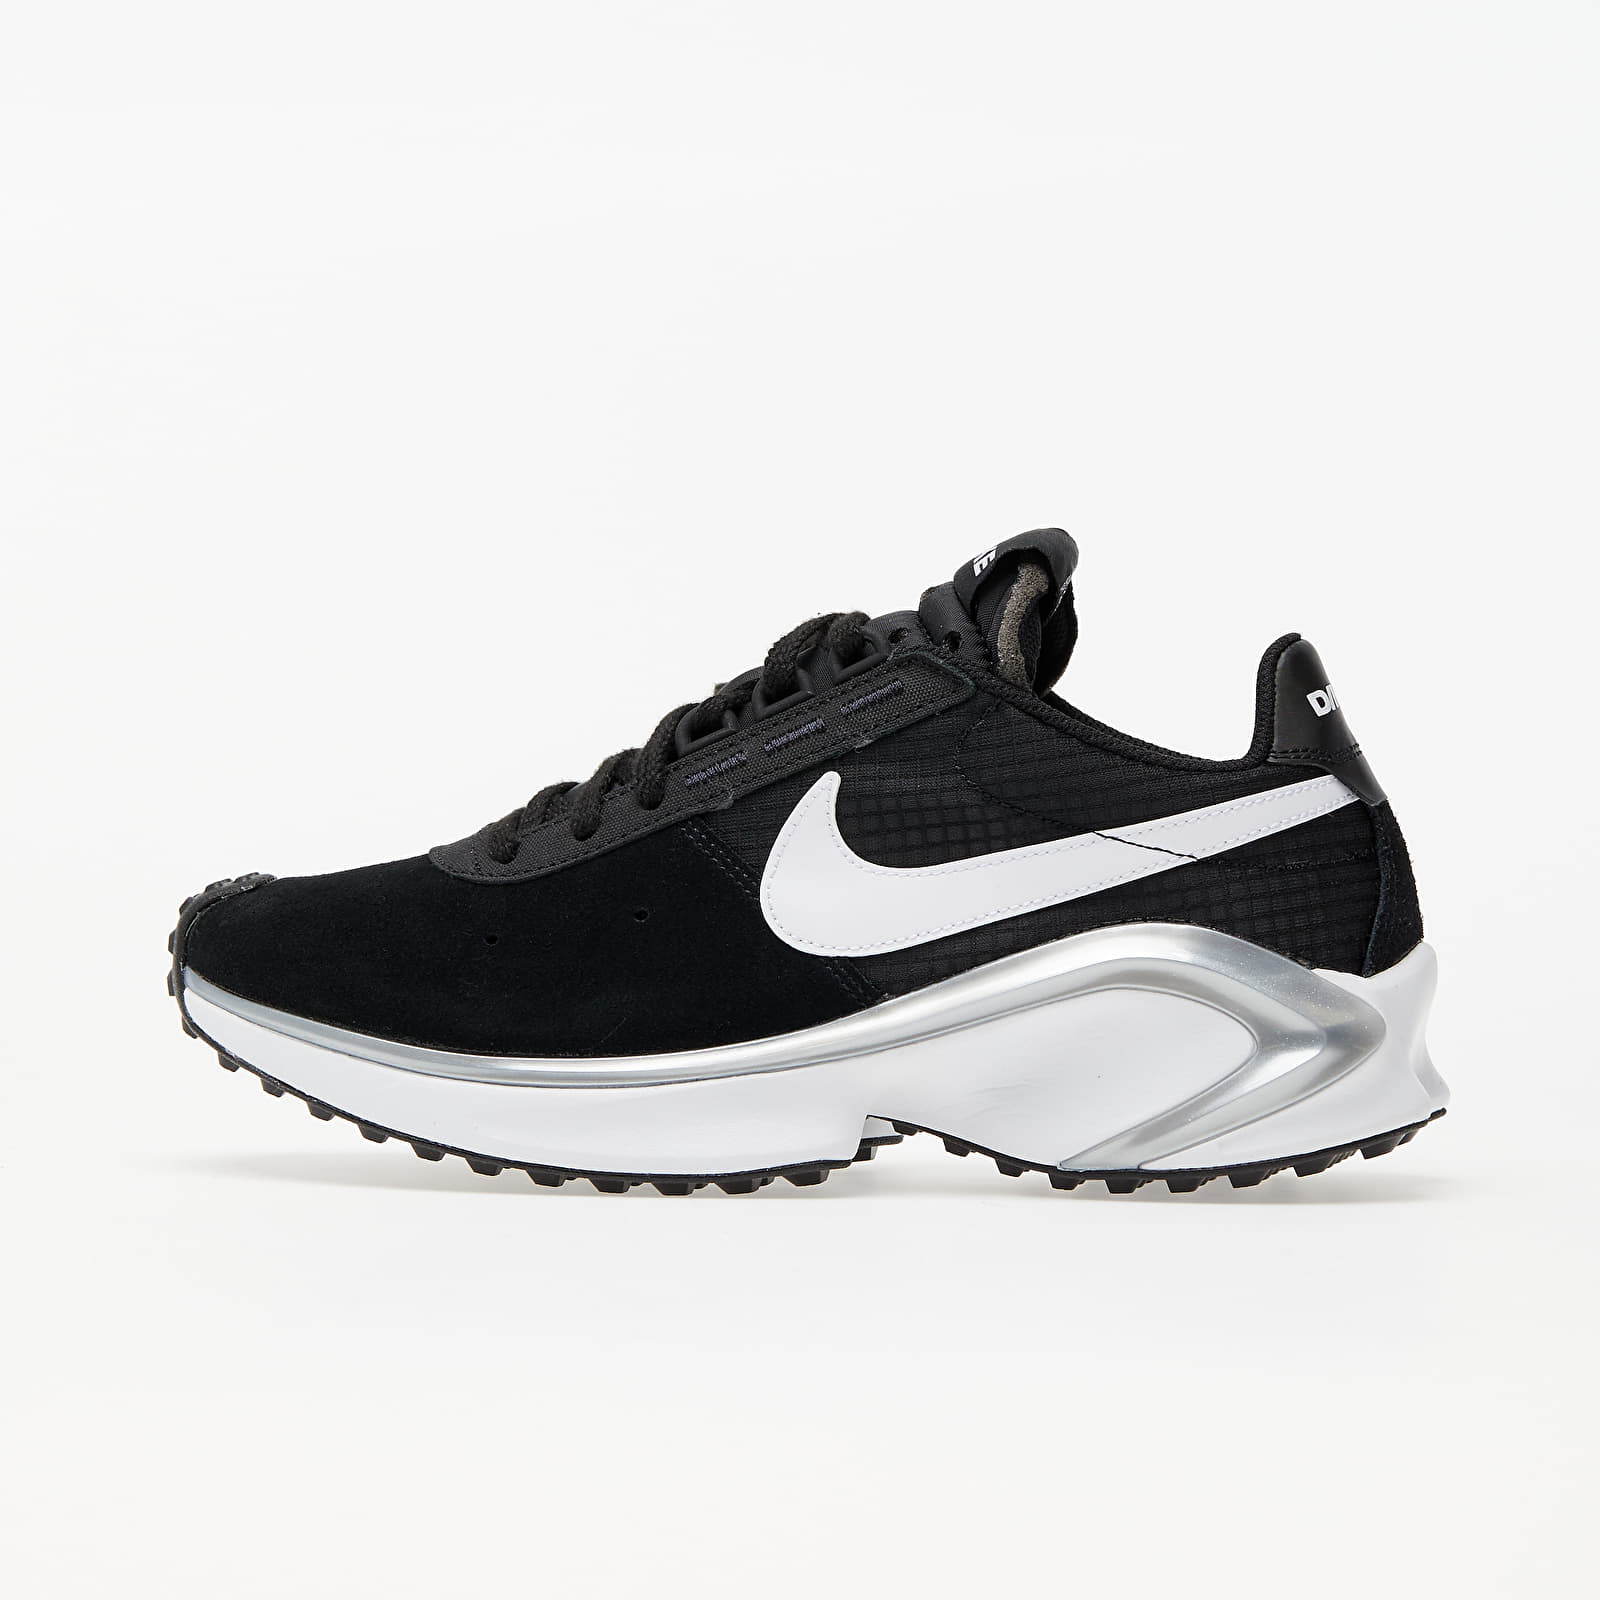 Nike D/MS/X Waffle Black/ White-Metallic Silver-White EUR 44.5